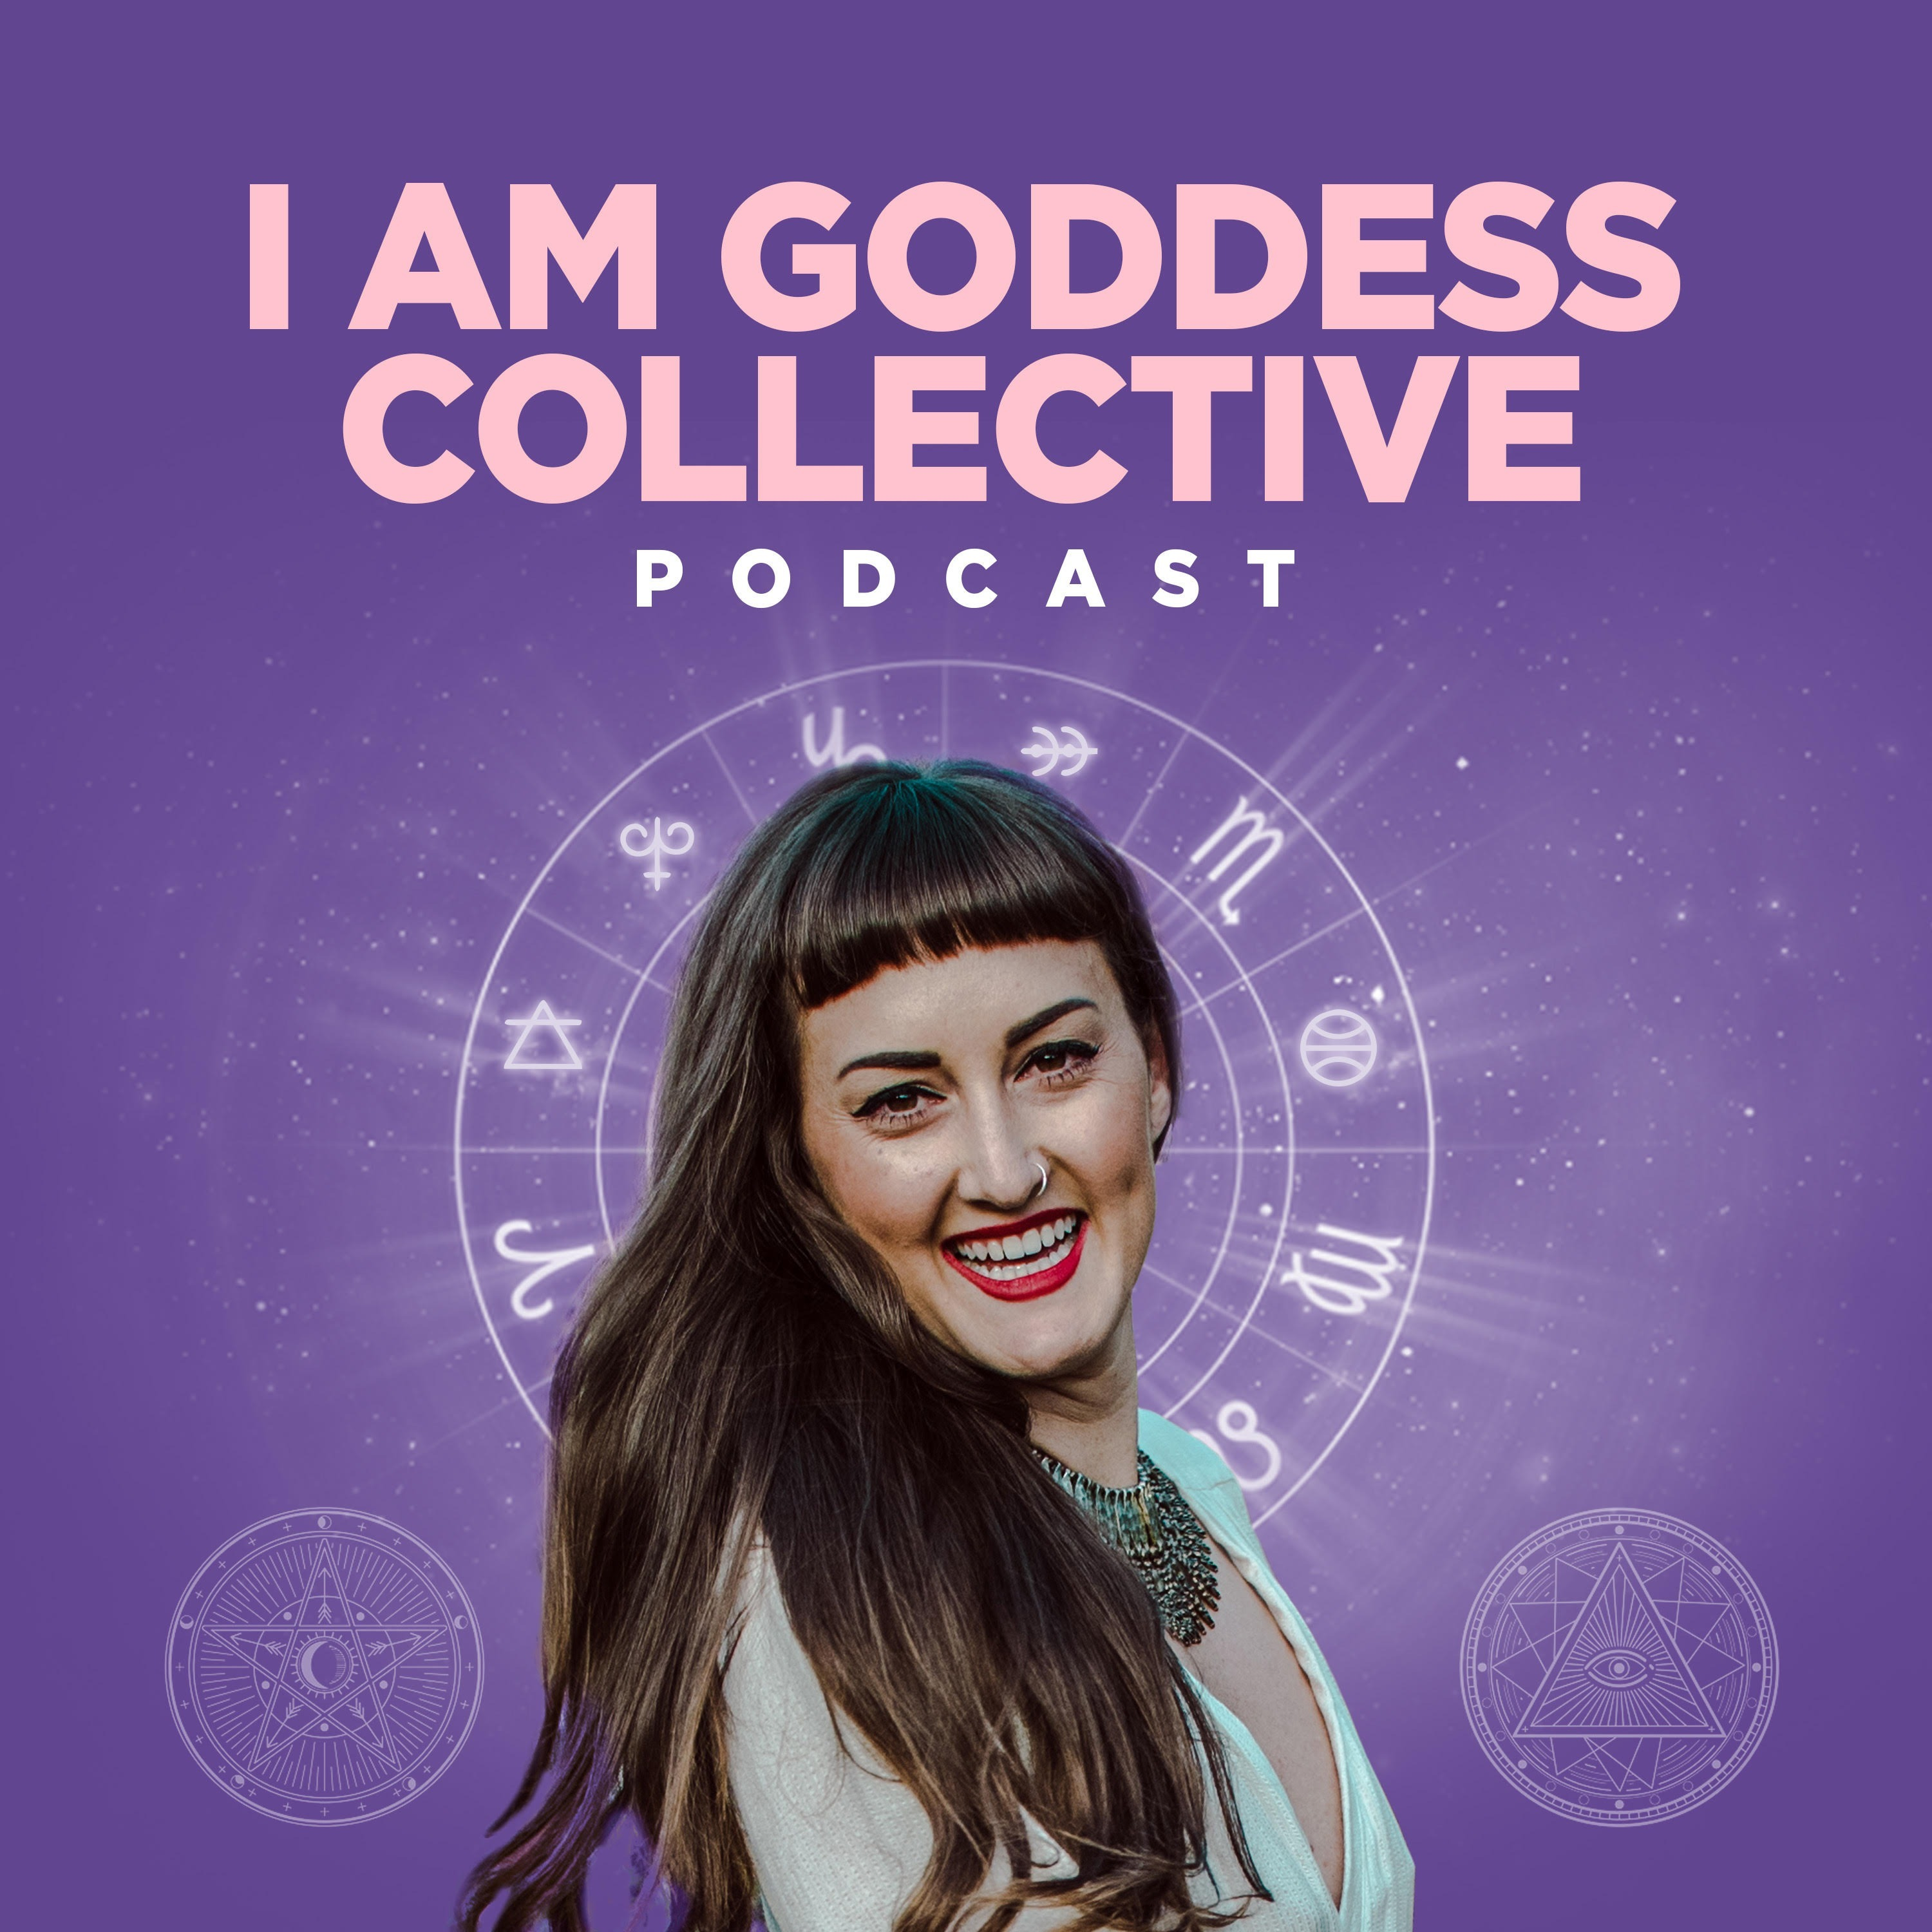 142: The Power of Divine Feminine Leadership with Amber J. Lawson